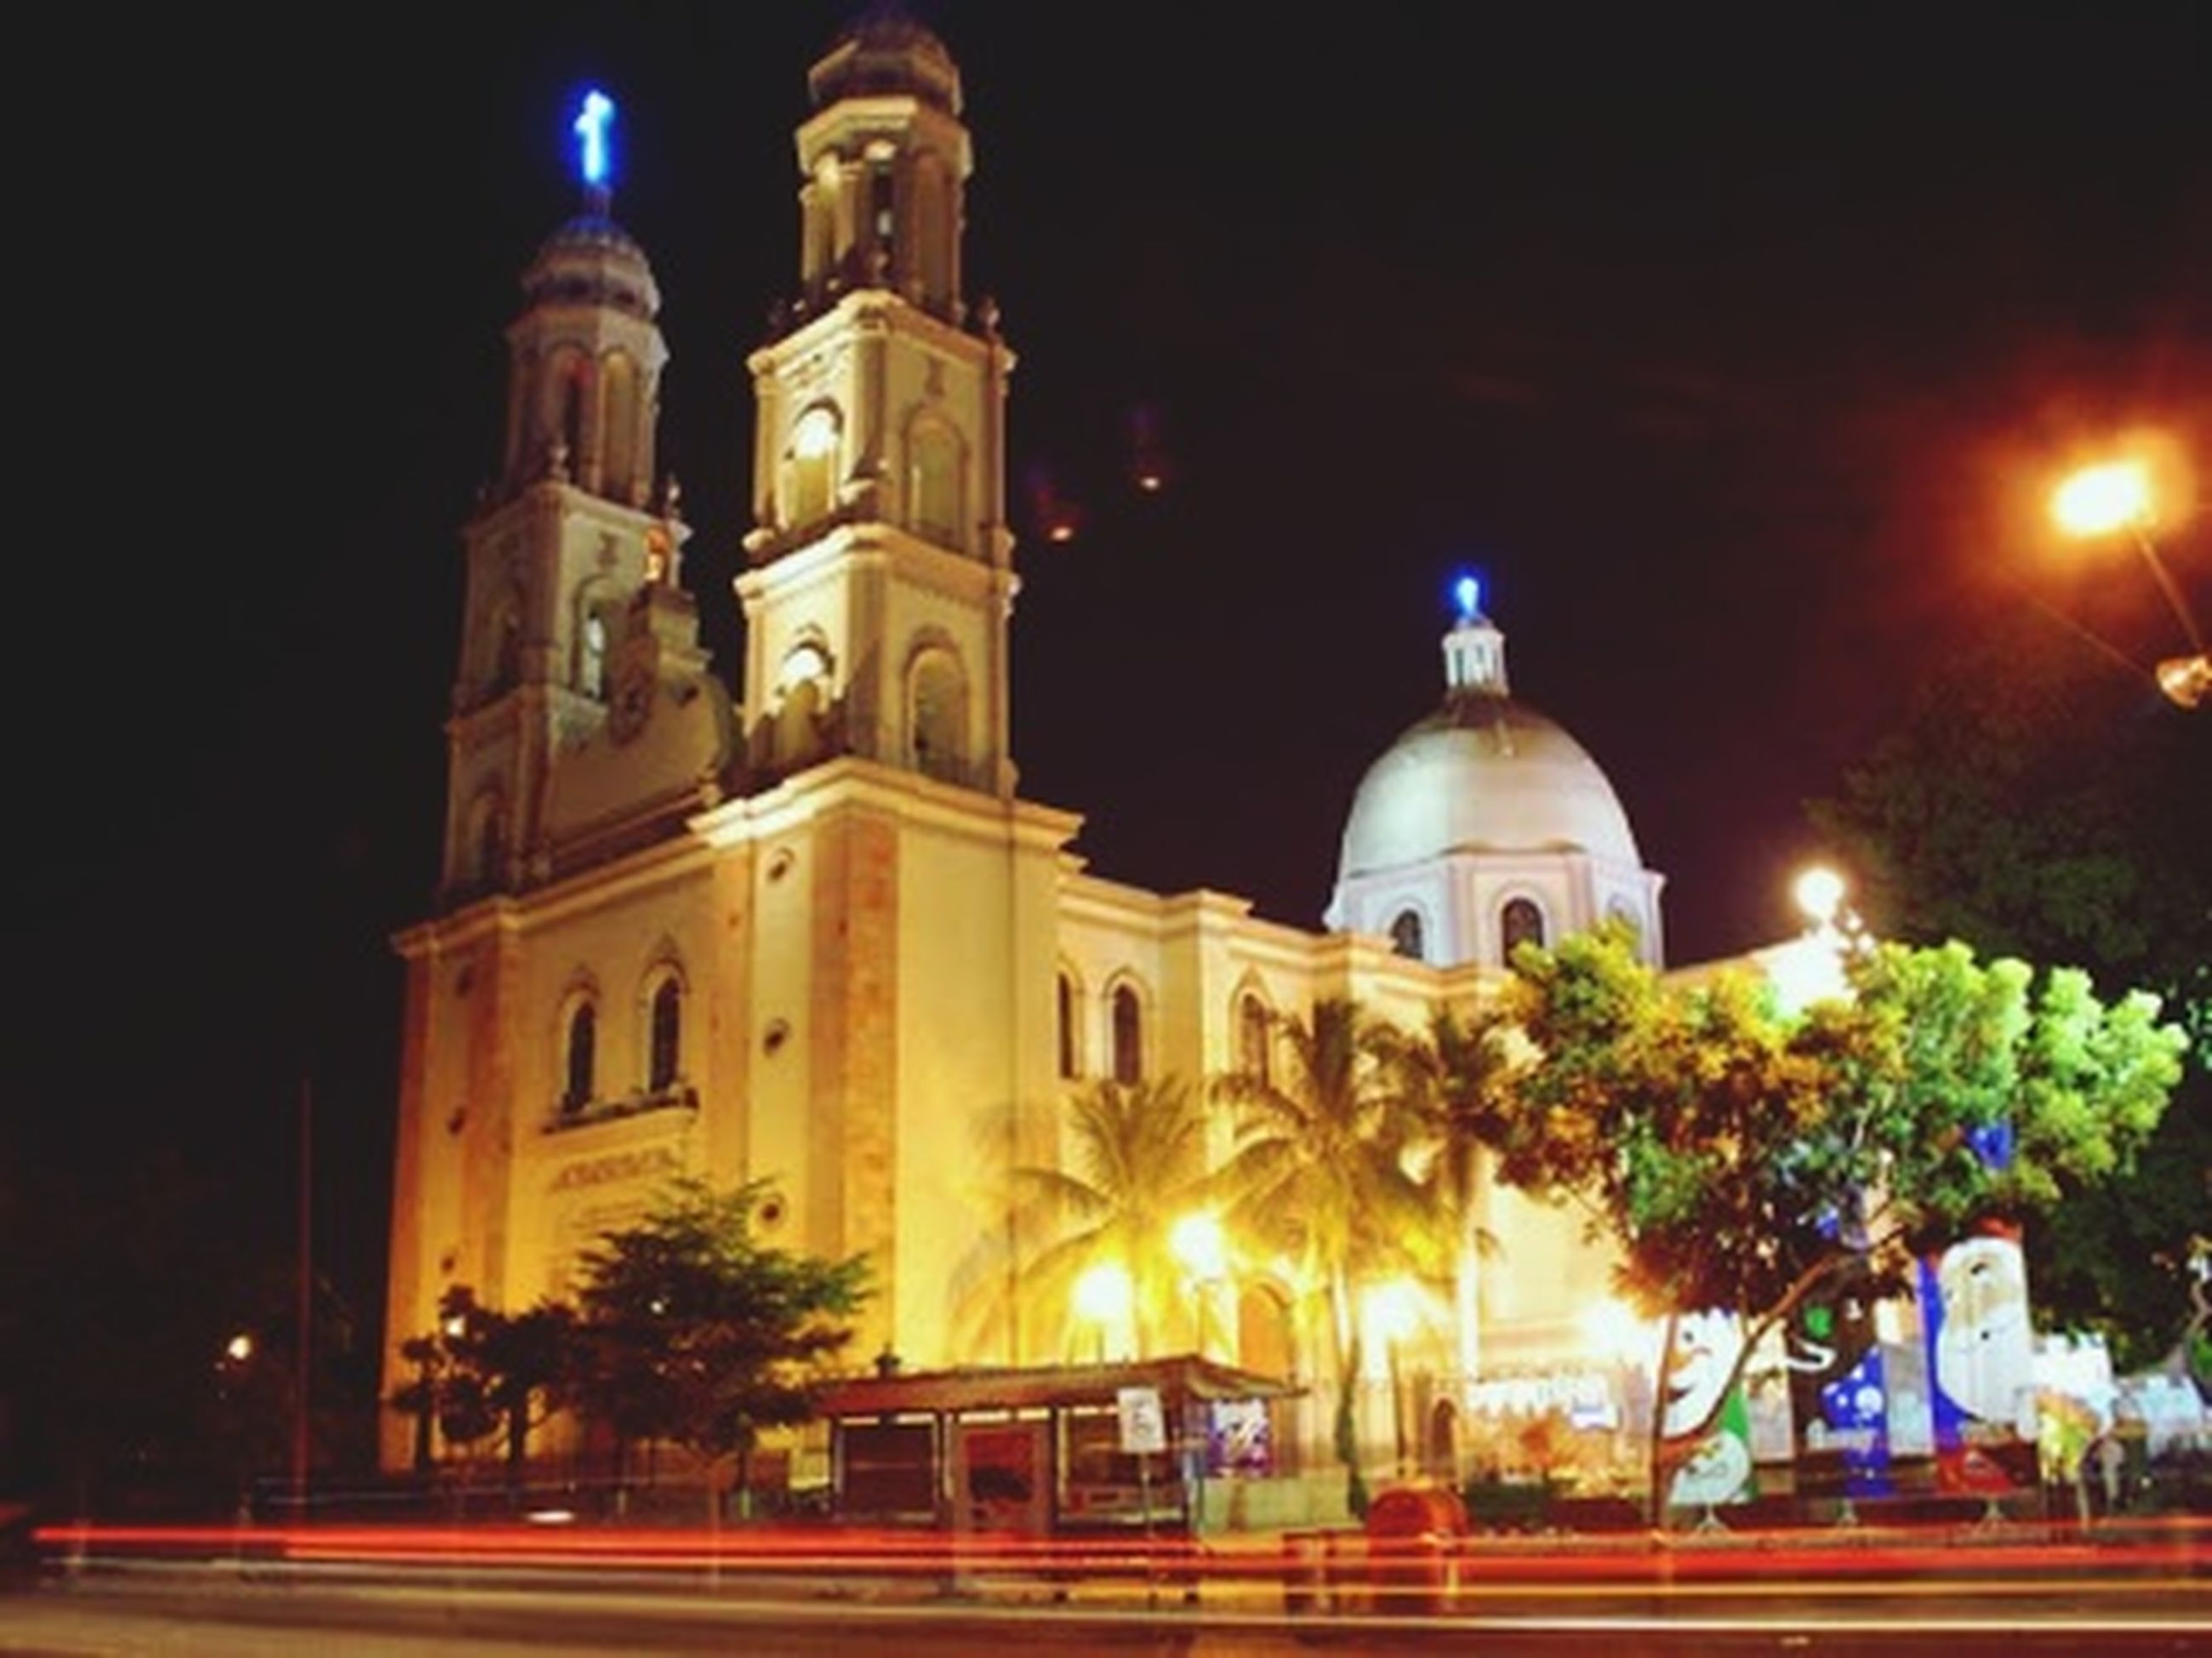 illuminated, religion, night, place of worship, building exterior, built structure, architecture, spirituality, church, dome, street light, lighting equipment, low angle view, clear sky, cathedral, outdoors, sky, no people